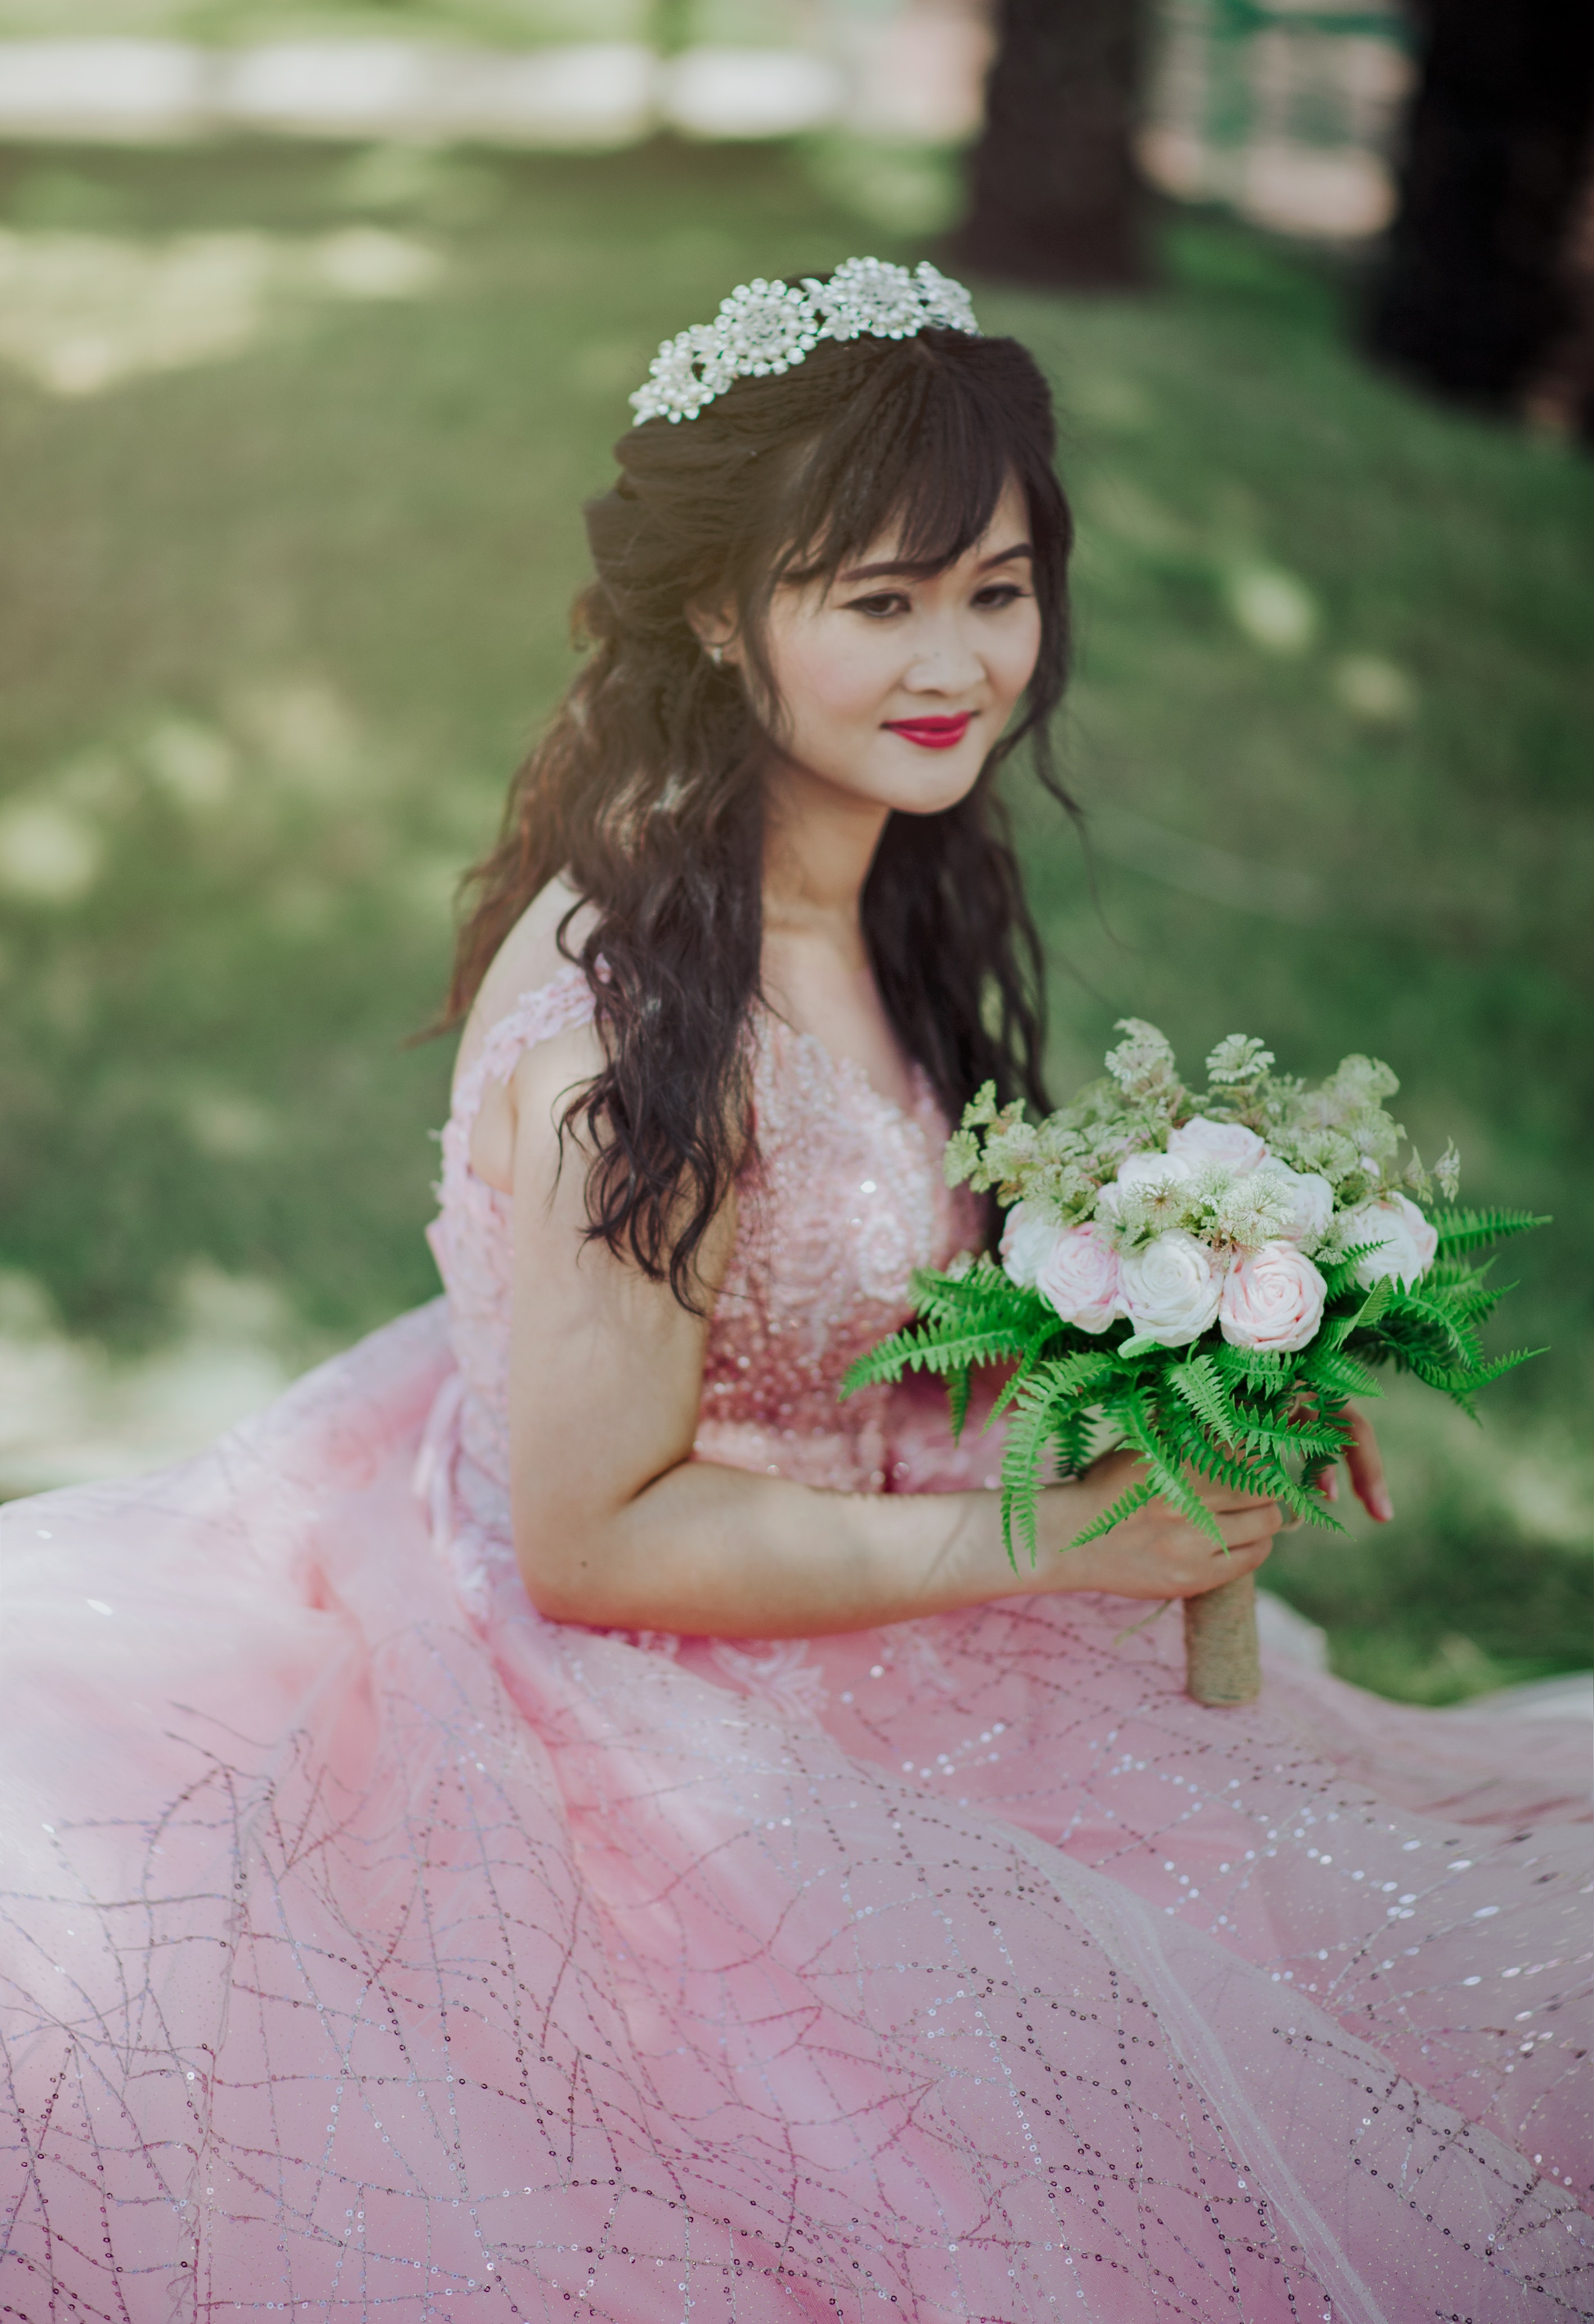 Women's Pink Gown, Red lips, Pose, Person, Wear, HQ Photo